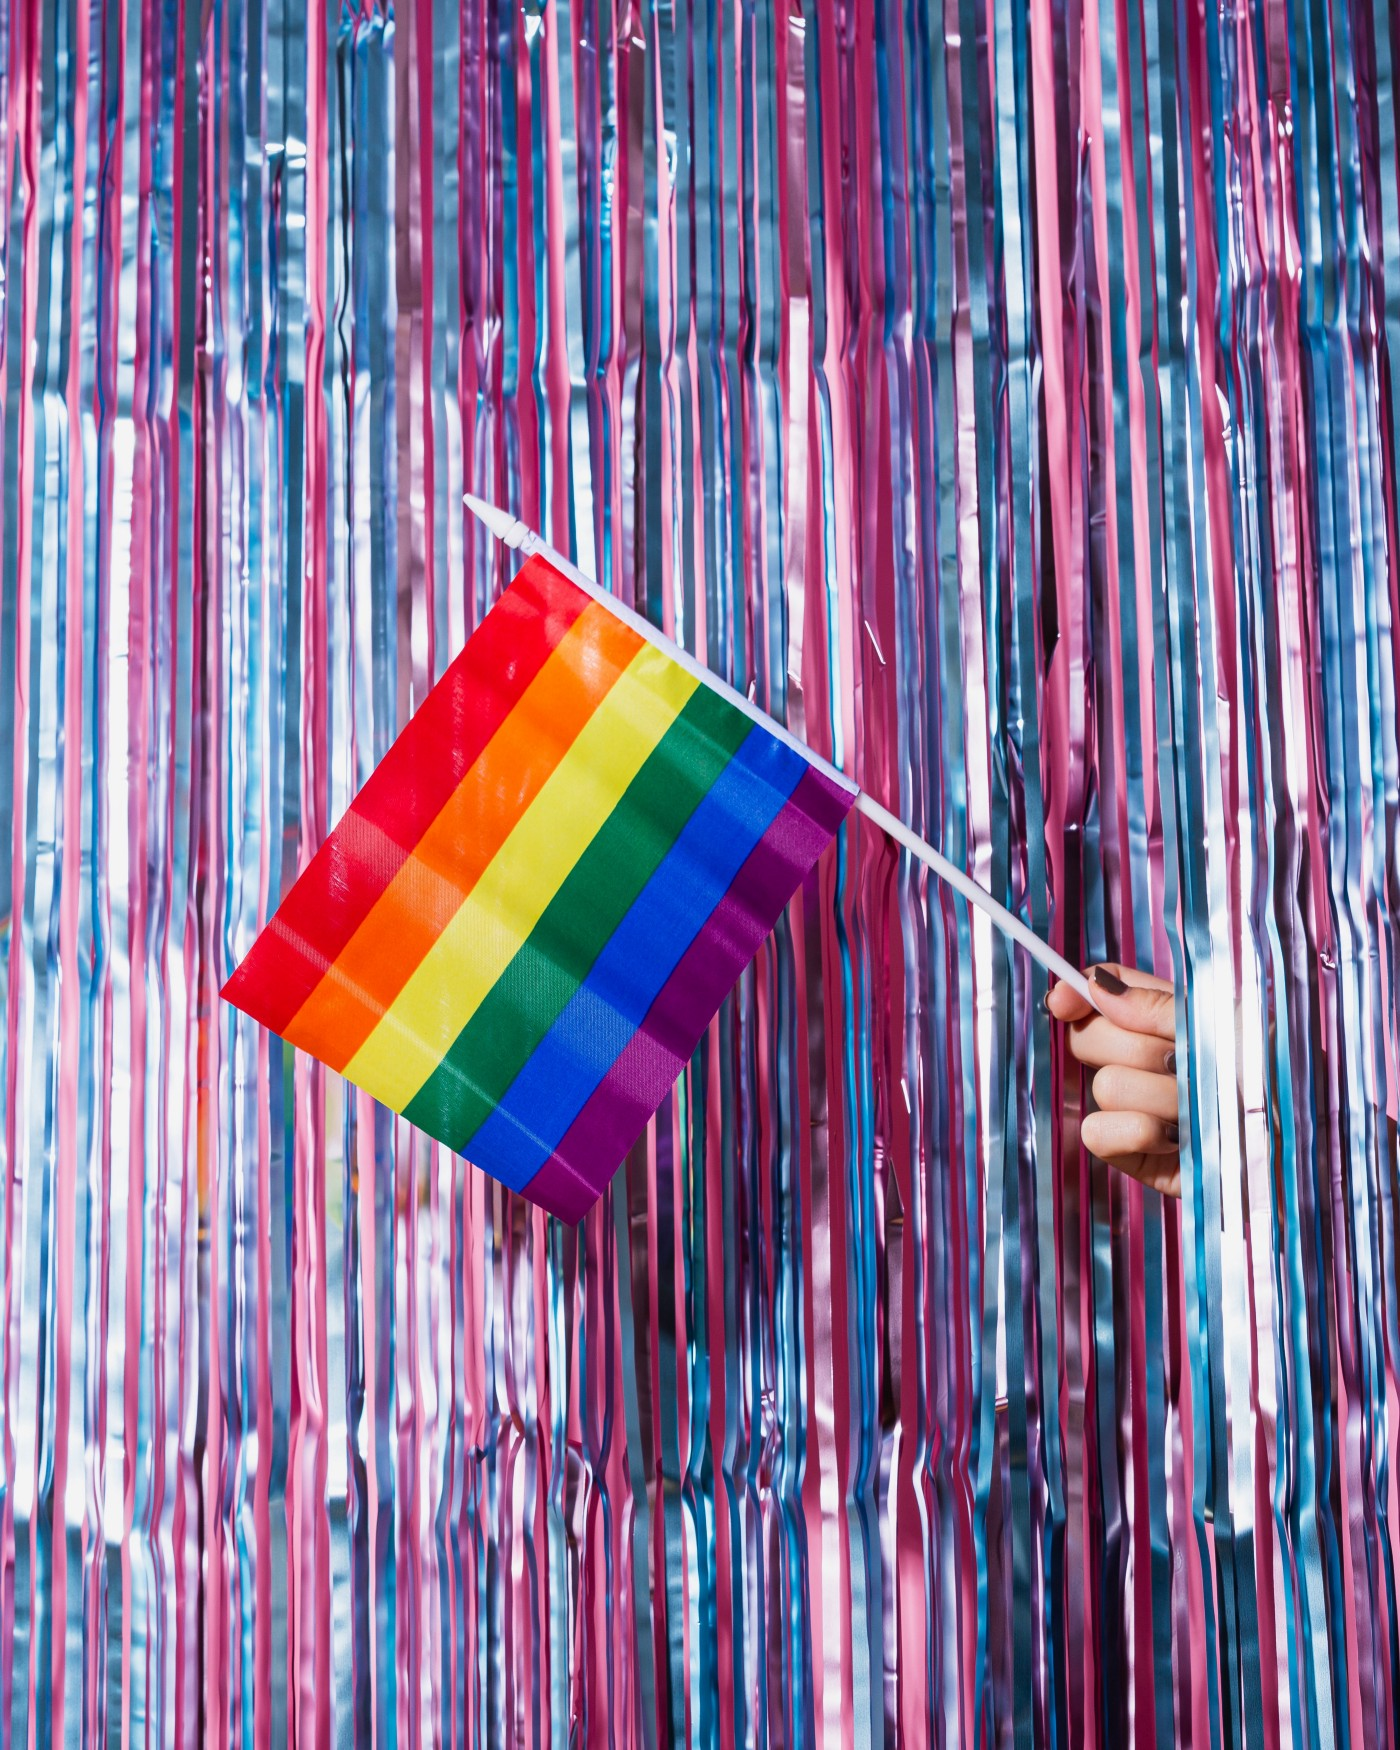 A small pride flag held from beyond a shiny curtain